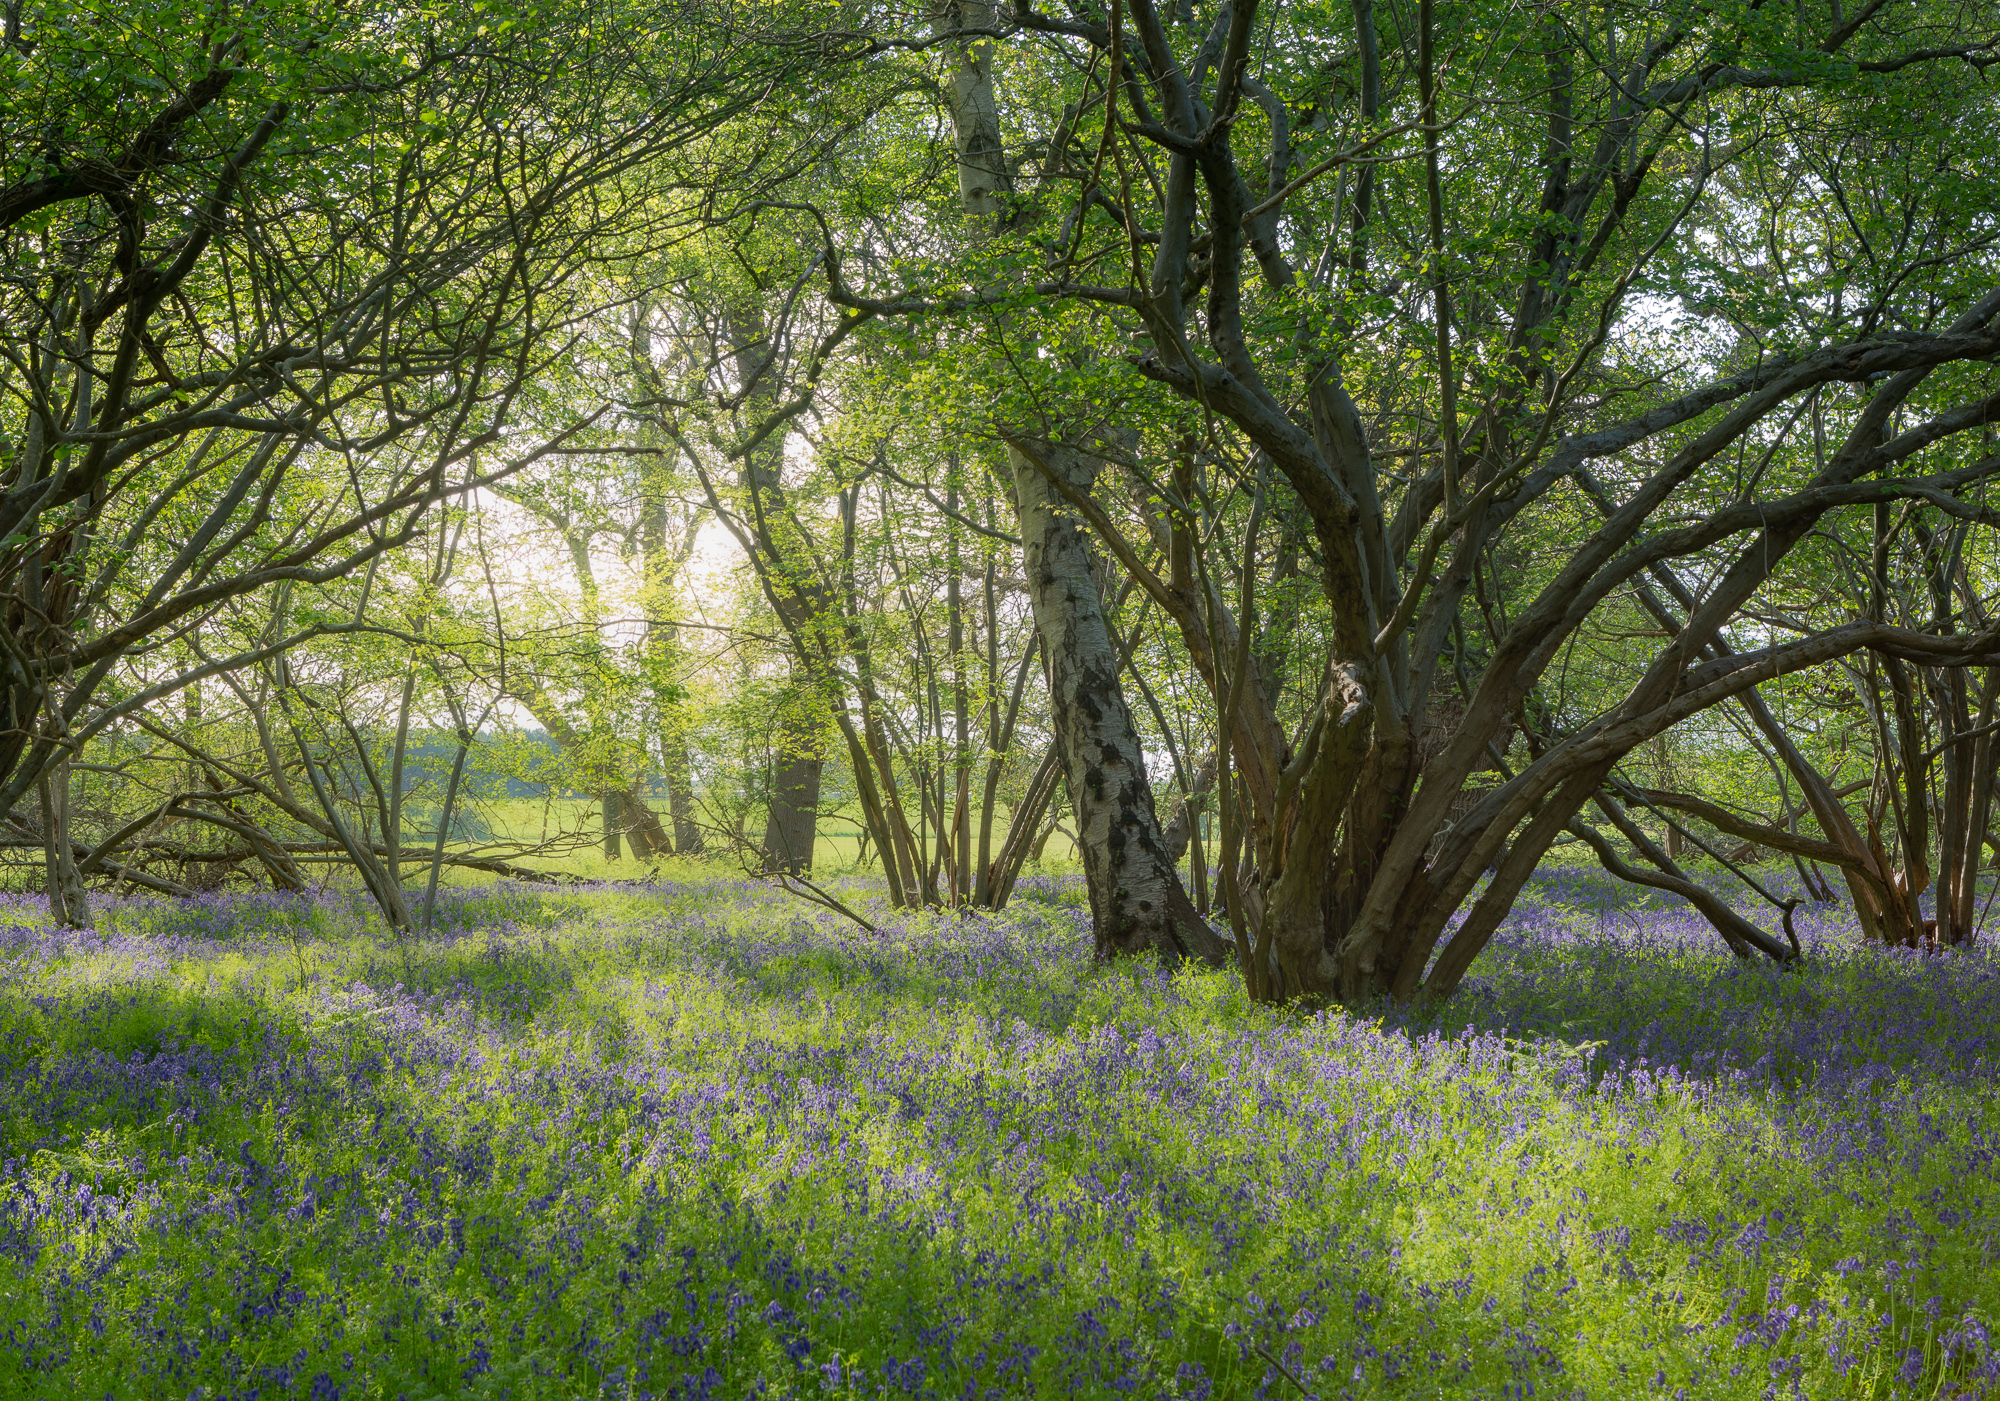 Susurrus - Woodland Photograph at sunrise, with hazel trees and bluebells in Suffolk